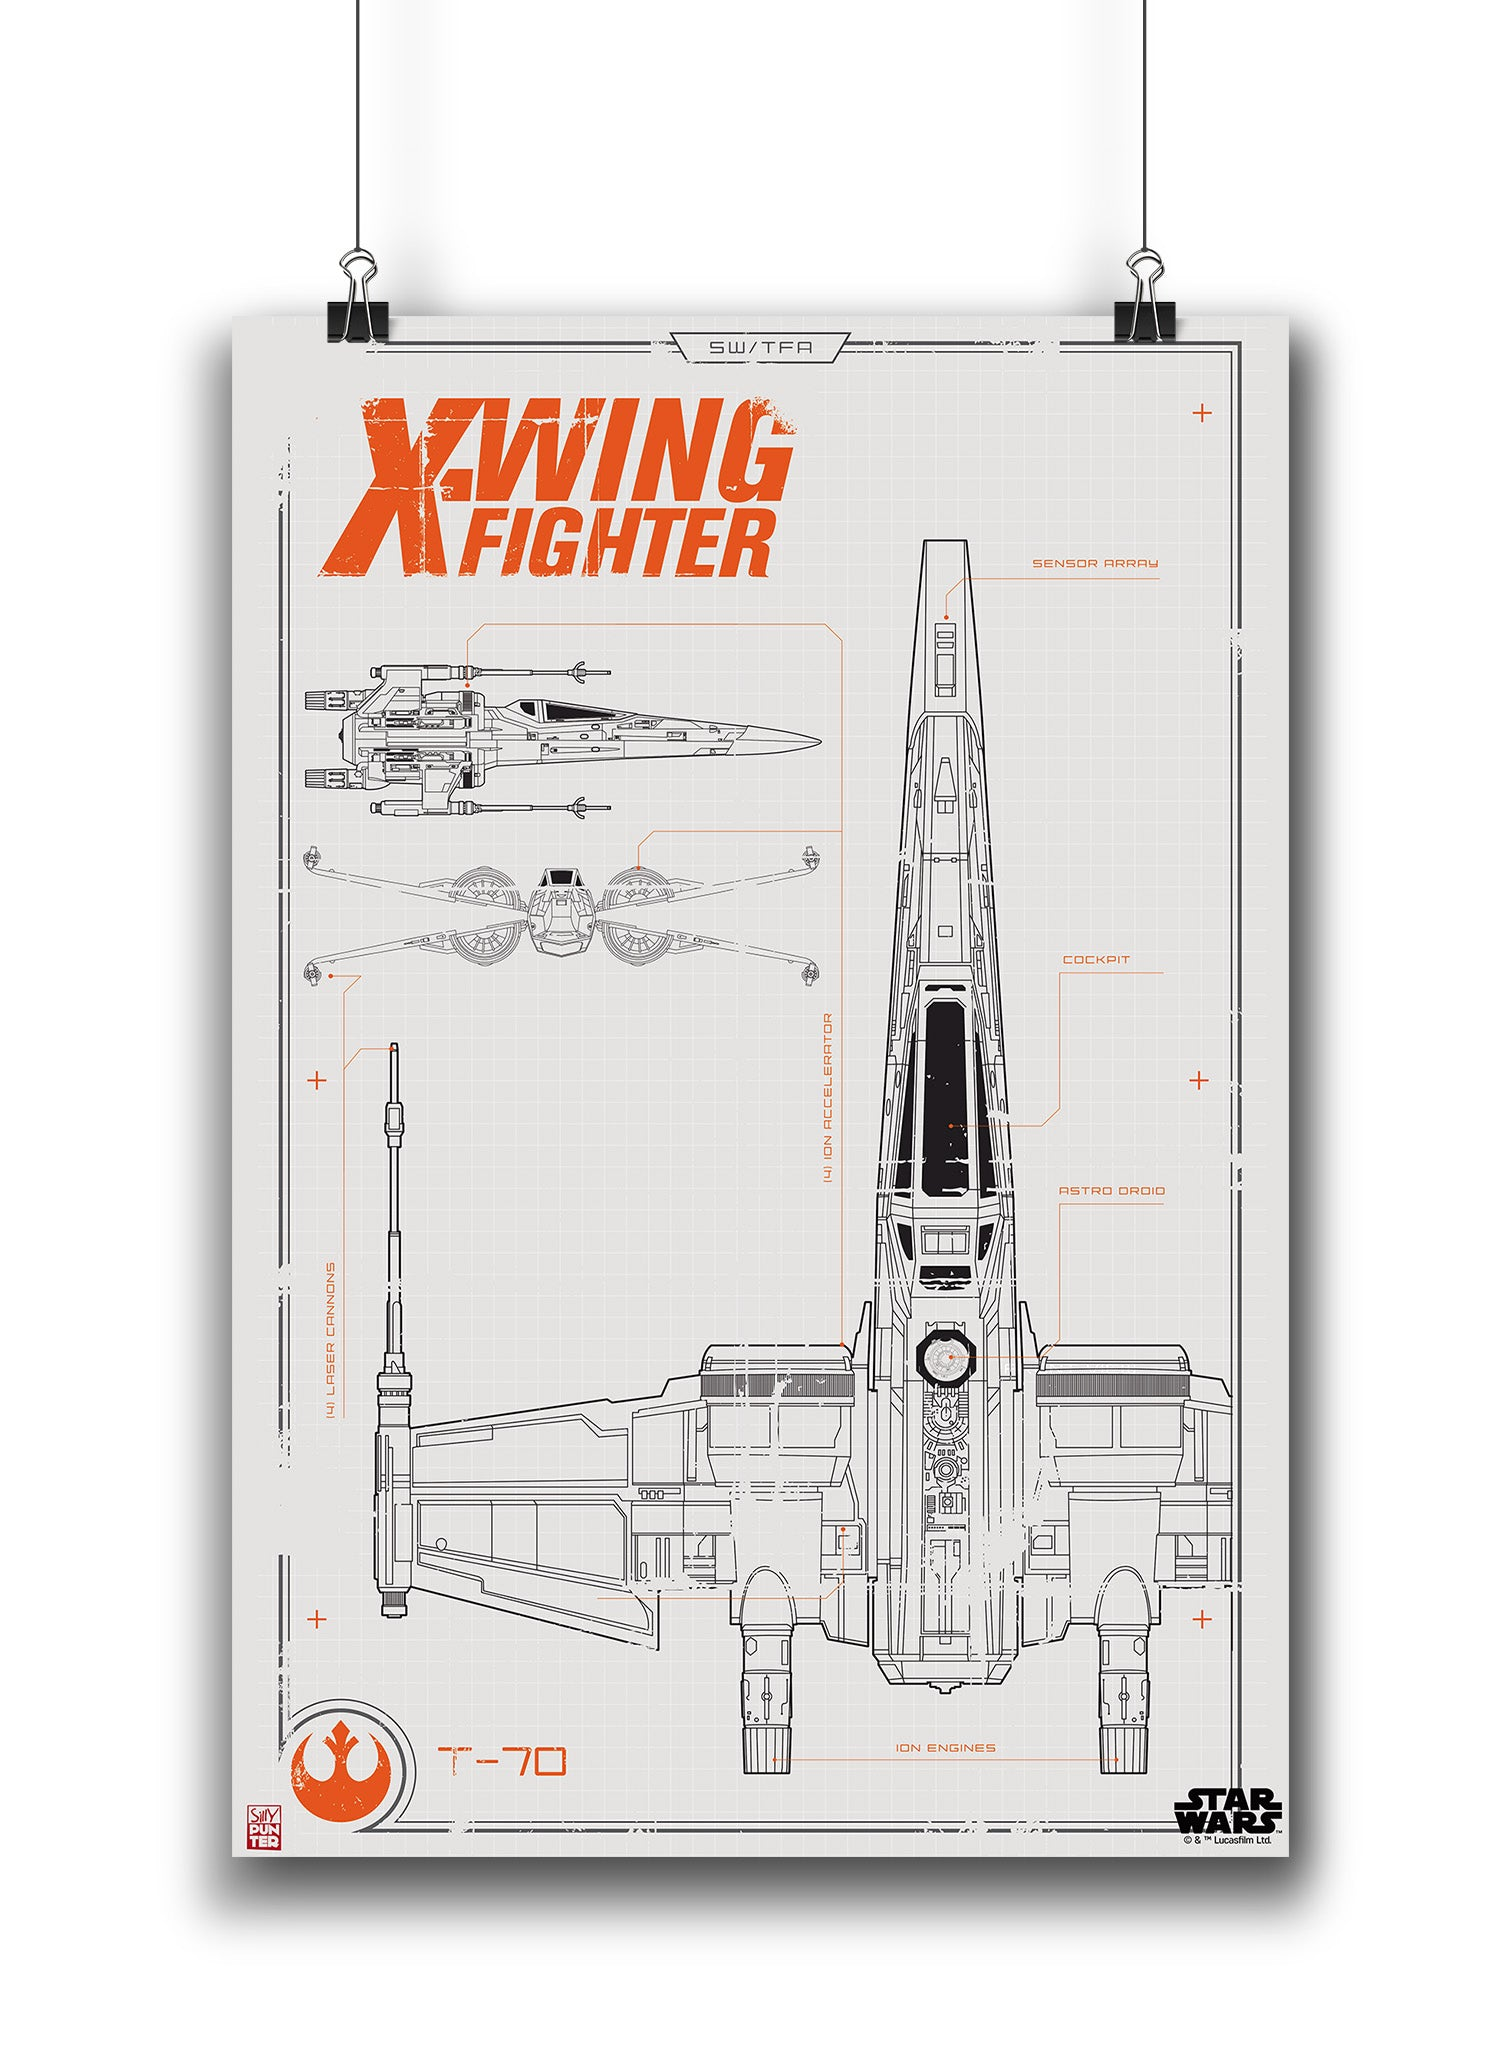 Star wars x wing fighter blueprint poster in india silly punter star wars x wing fighter blueprint poster malvernweather Gallery